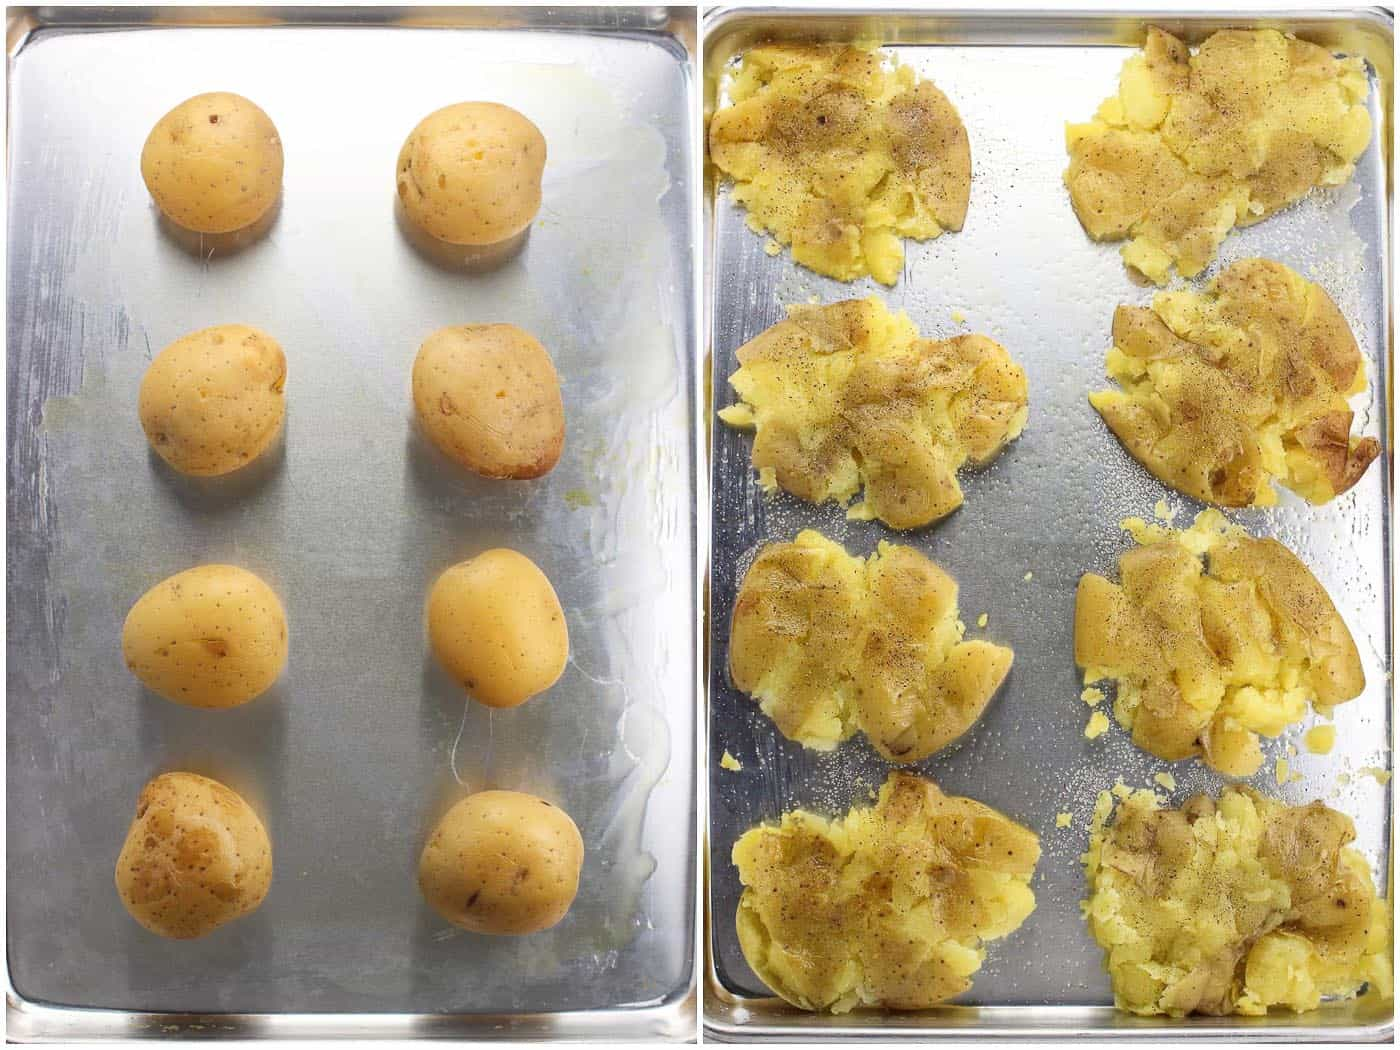 A side-by-side photo of eight boiled whole yellow potatoes on a greased baking sheet (left) and after being smashed (right)